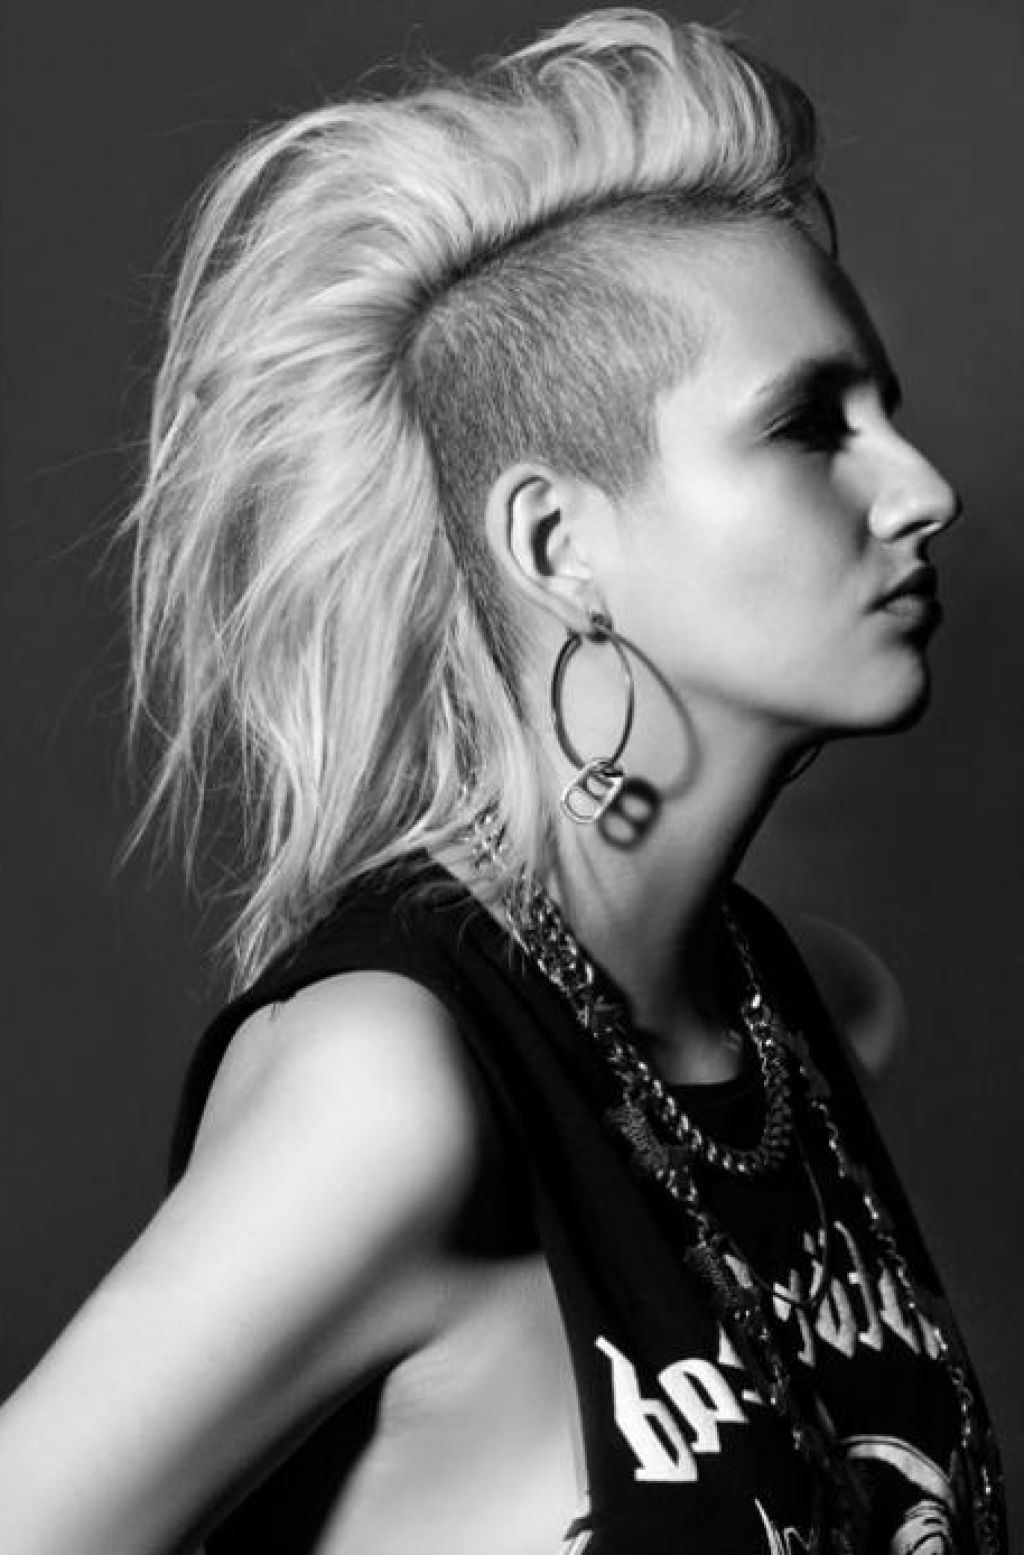 Punk hairstyles are not only for punk bands simple hairstyle ideas